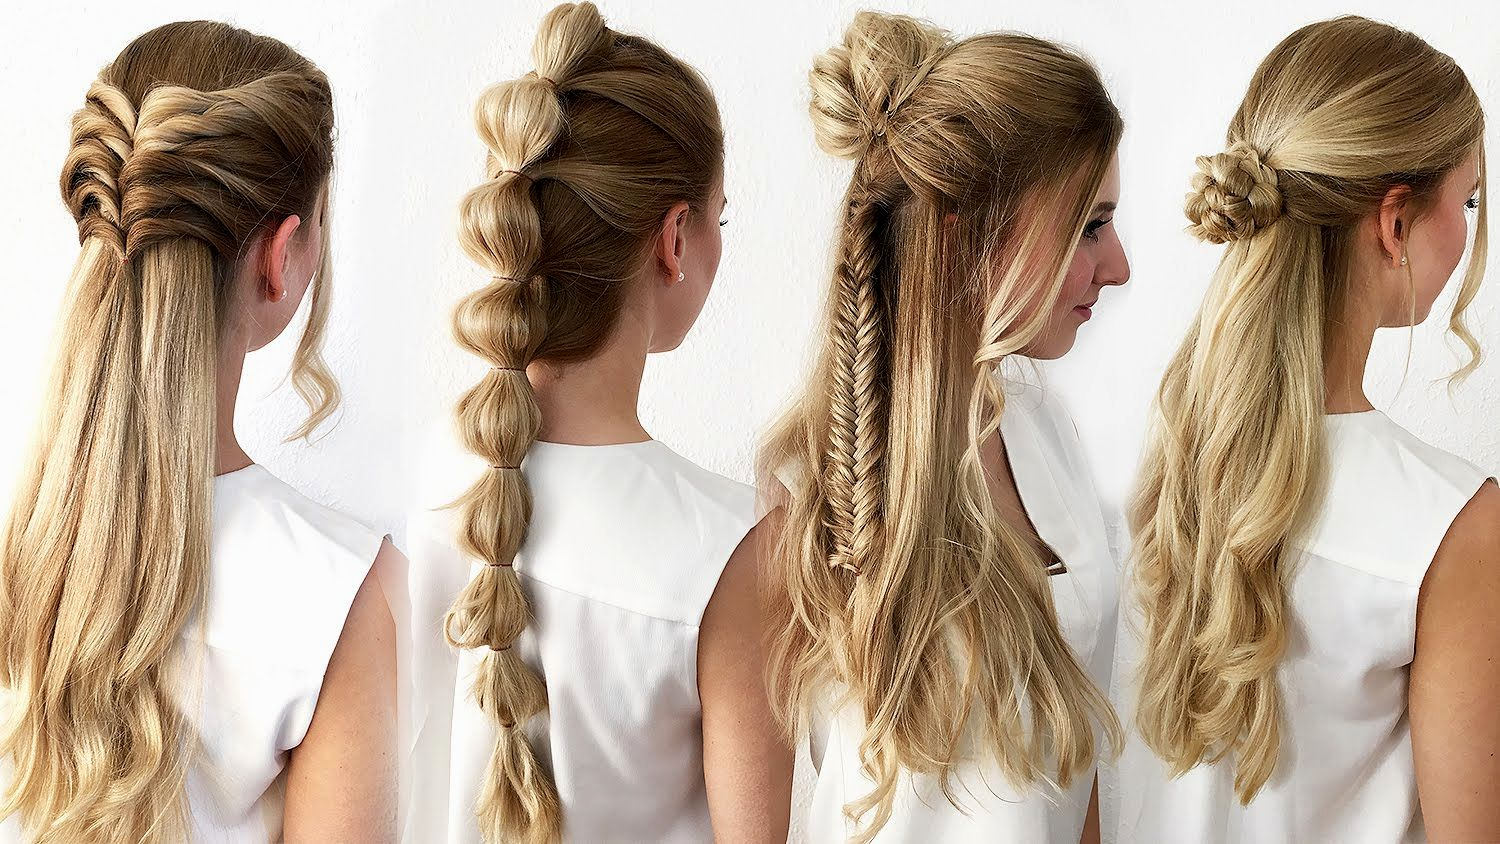 contemporary braided hairstyles with pony model-Finest braided hairstyles With pony model